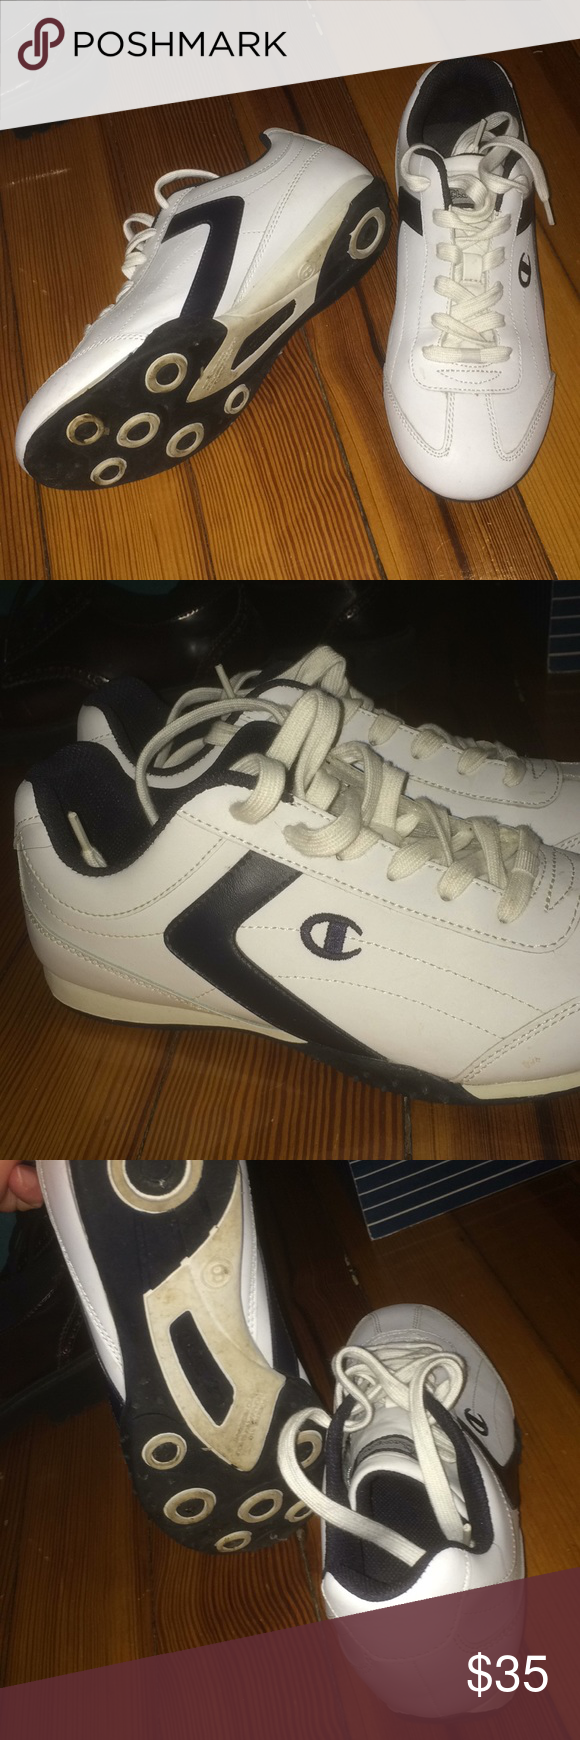 a009de5ca9a Champions sneakers. Champions white sneakers. Size 8 worn twice perfect  condition. Champion Shoes Athletic Shoes